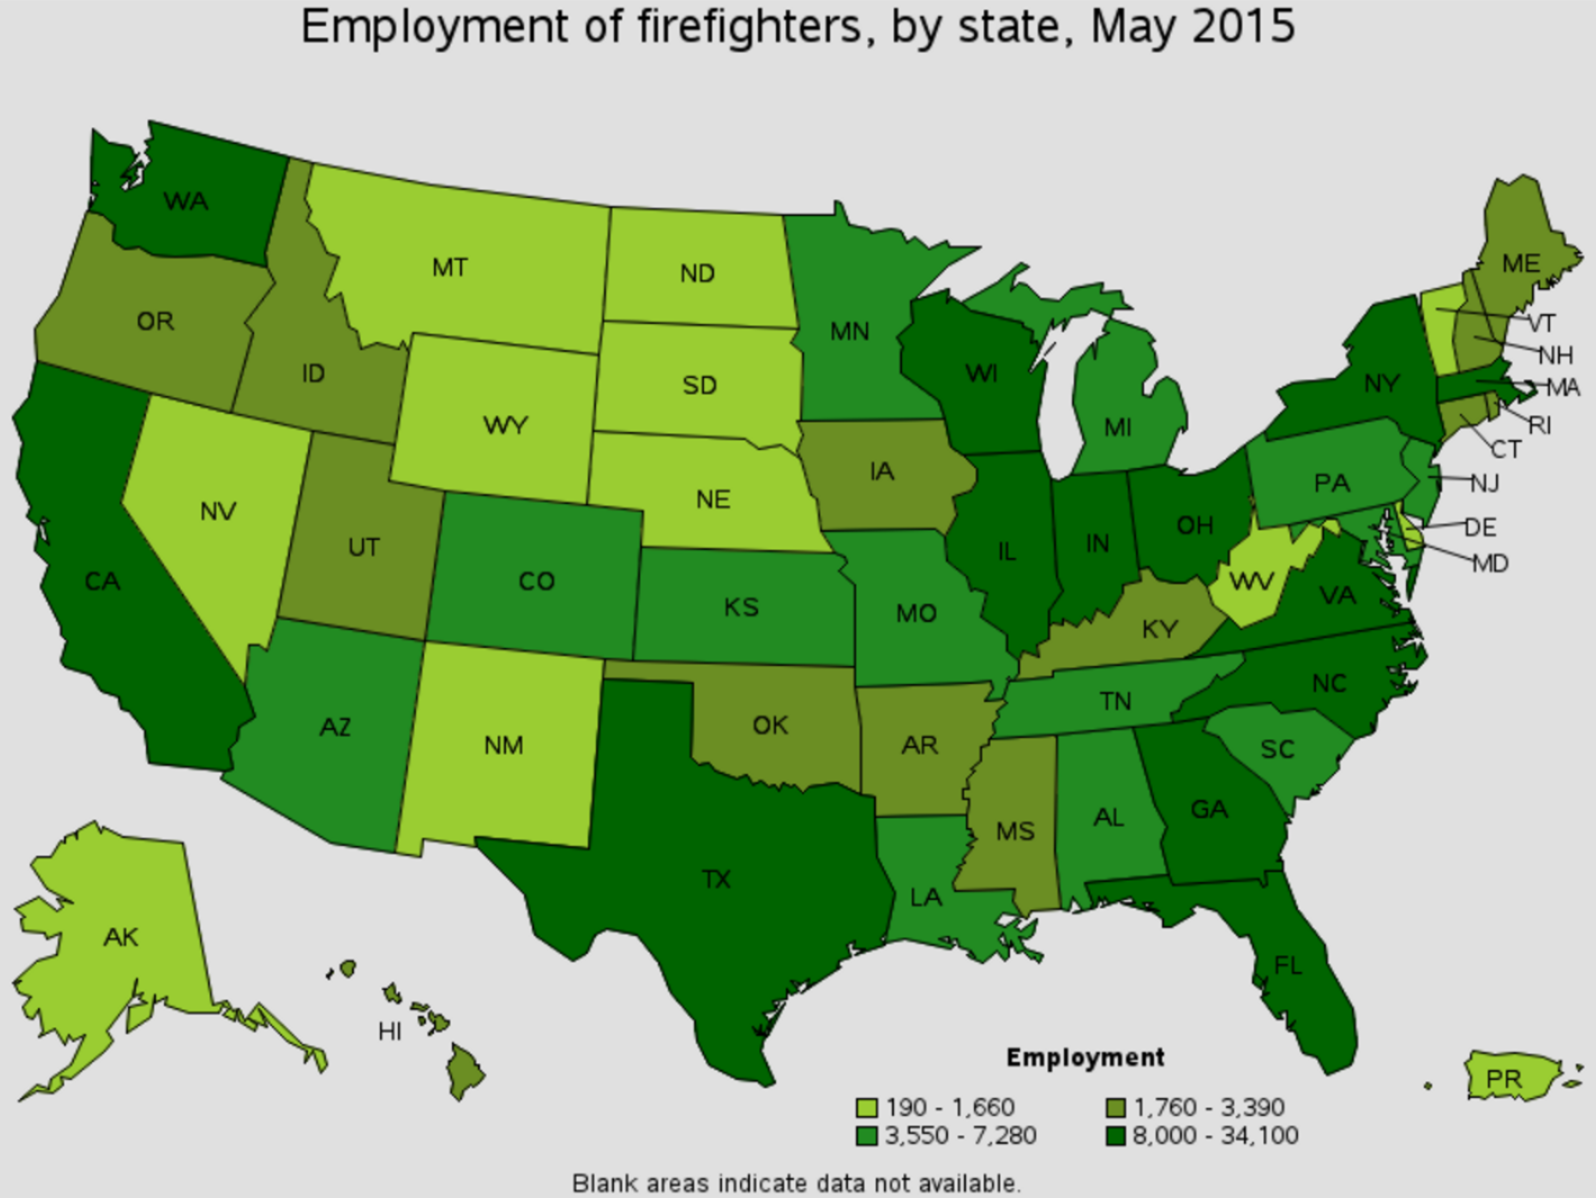 firefighter job outlook by state Zuni New Mexico